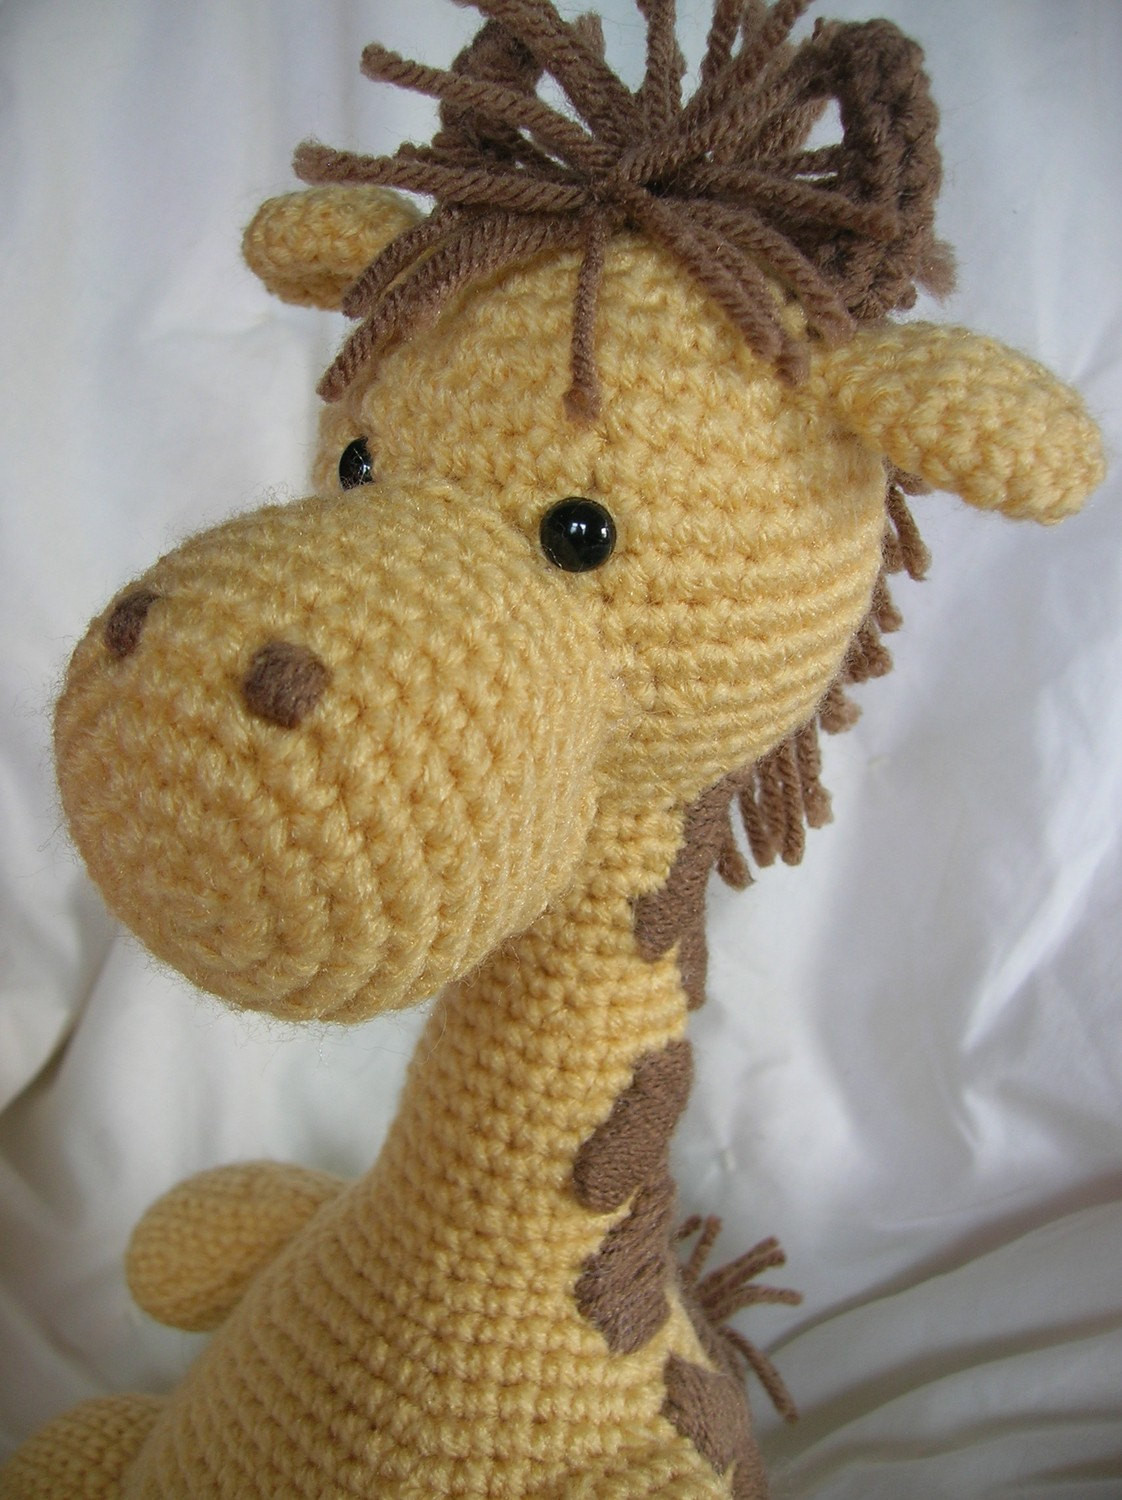 Free Crochet Dog Patterns Awesome Crochet Giraffe Pattern – Crochet Club Of Superb 45 Pictures Free Crochet Dog Patterns